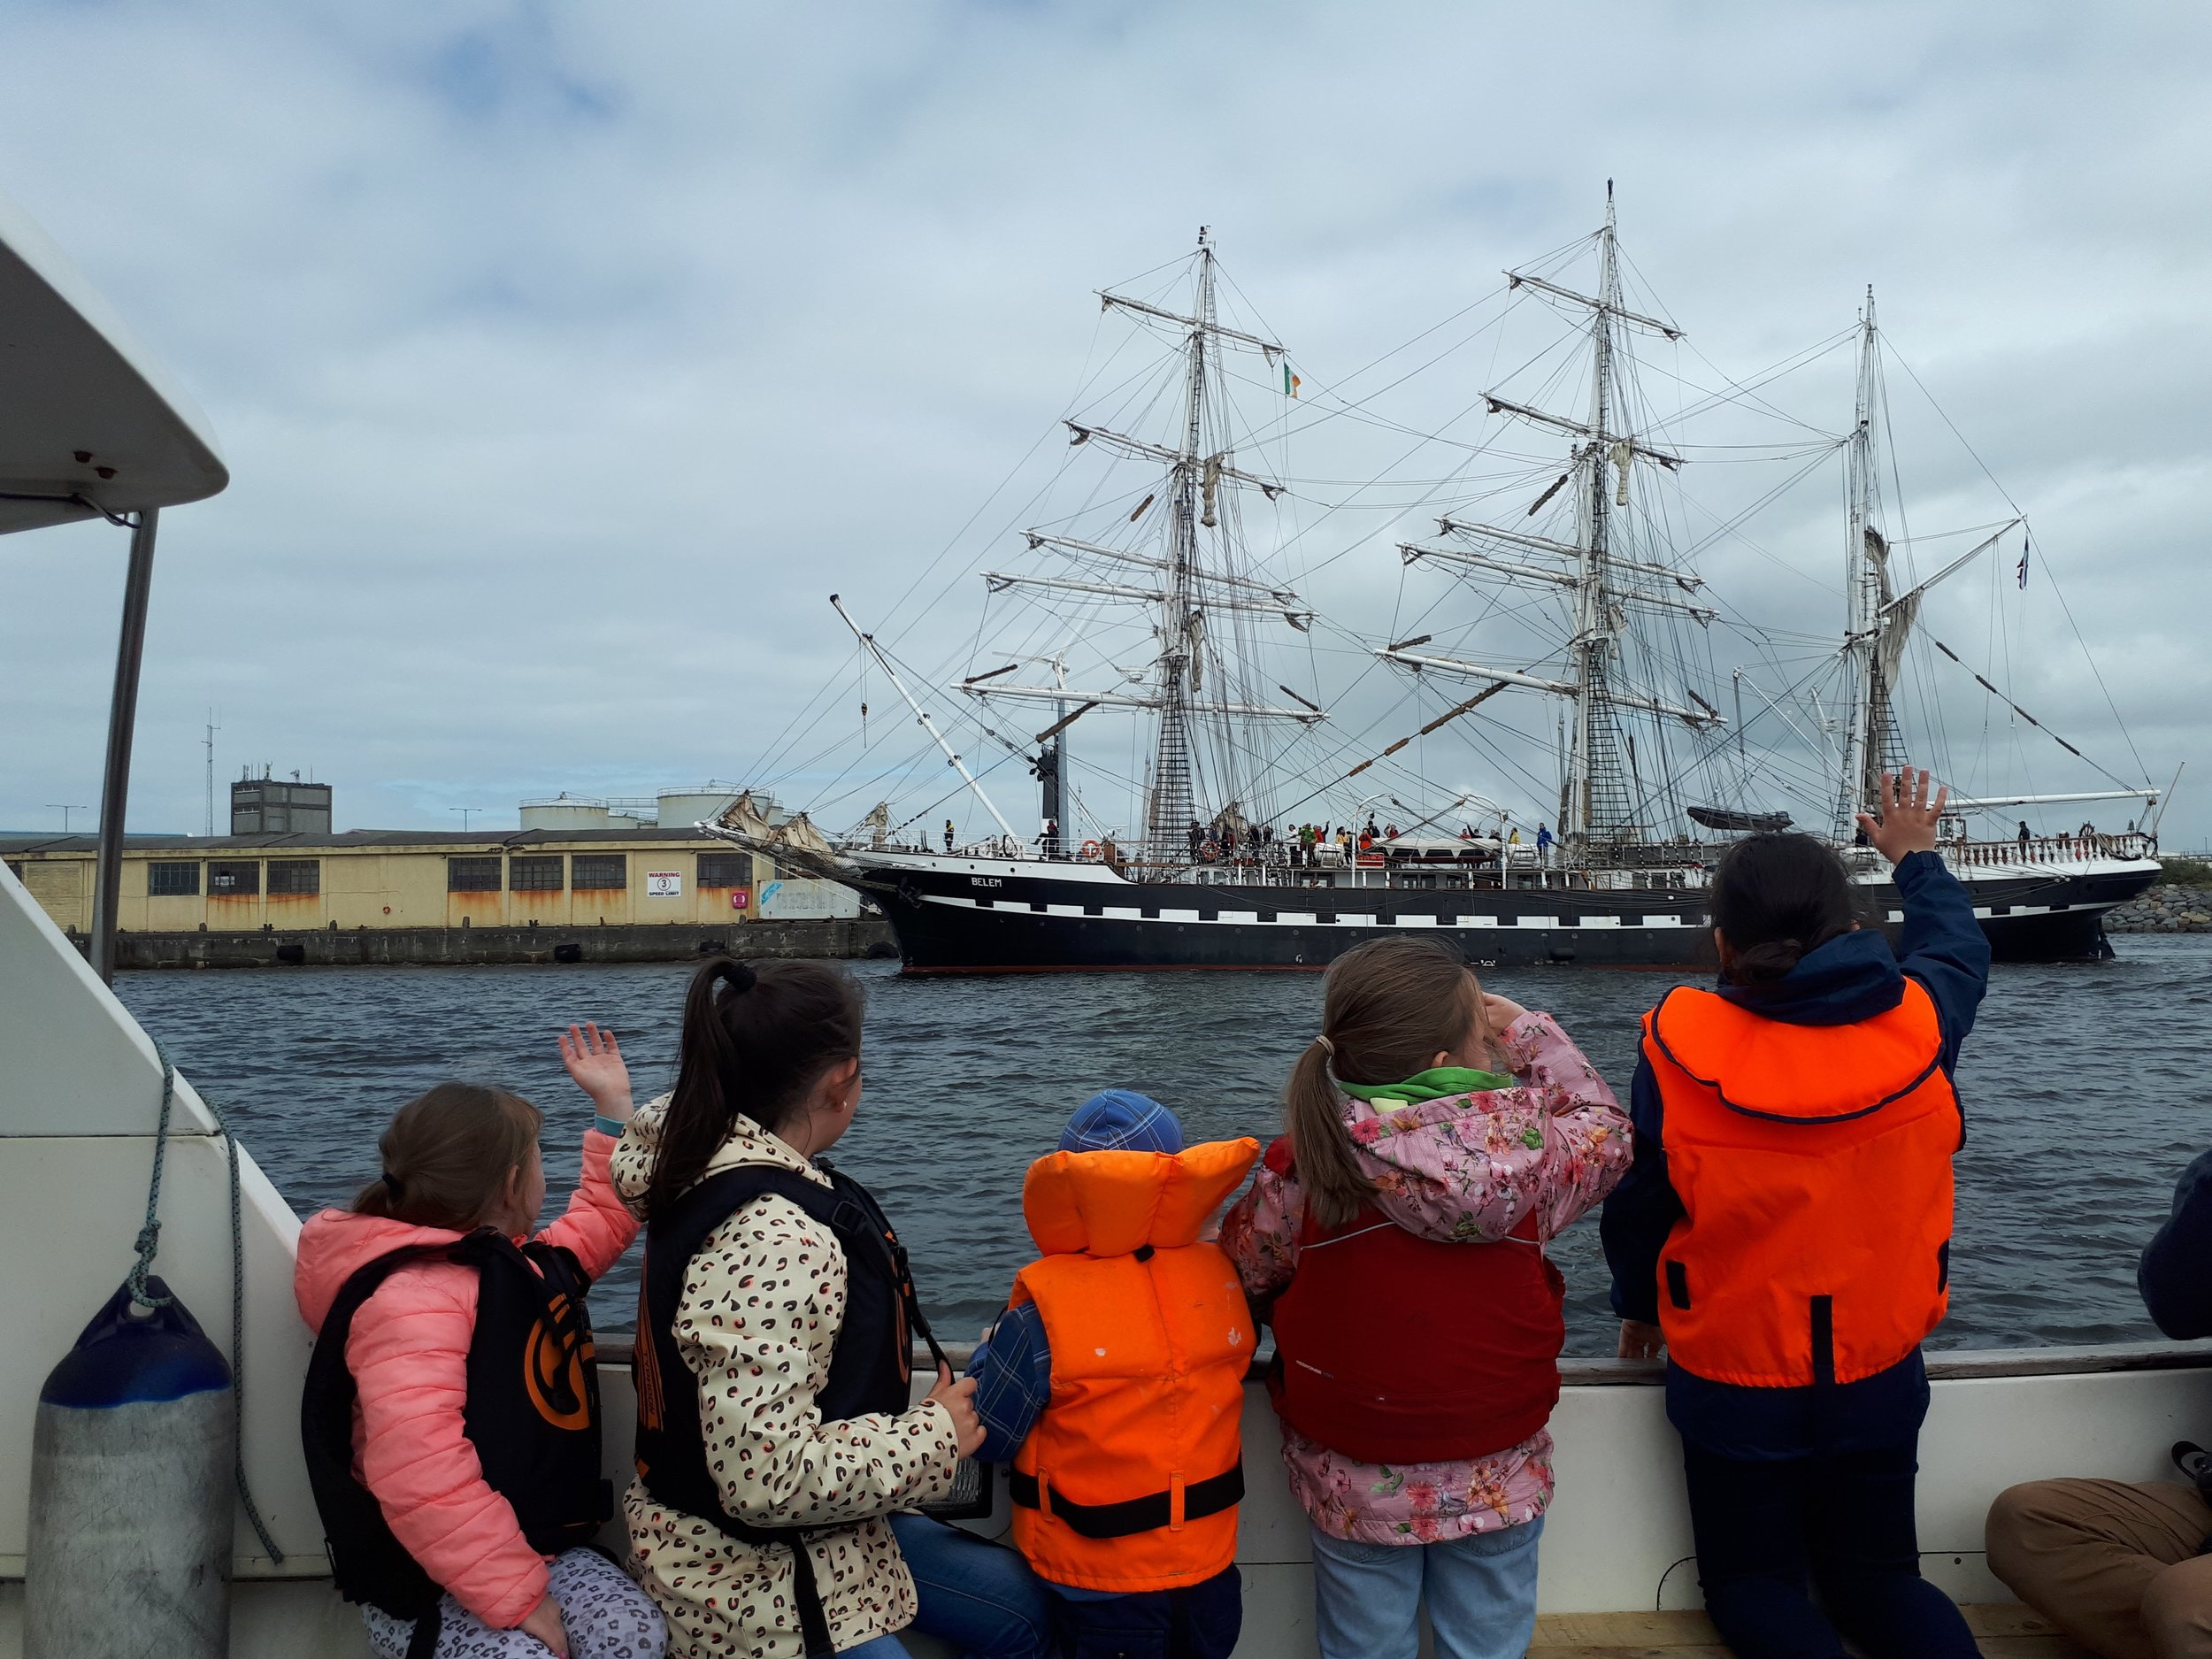 Share the magic! Galway Bay Boat Tours in Collaboration with Seafest, Galway 2018.